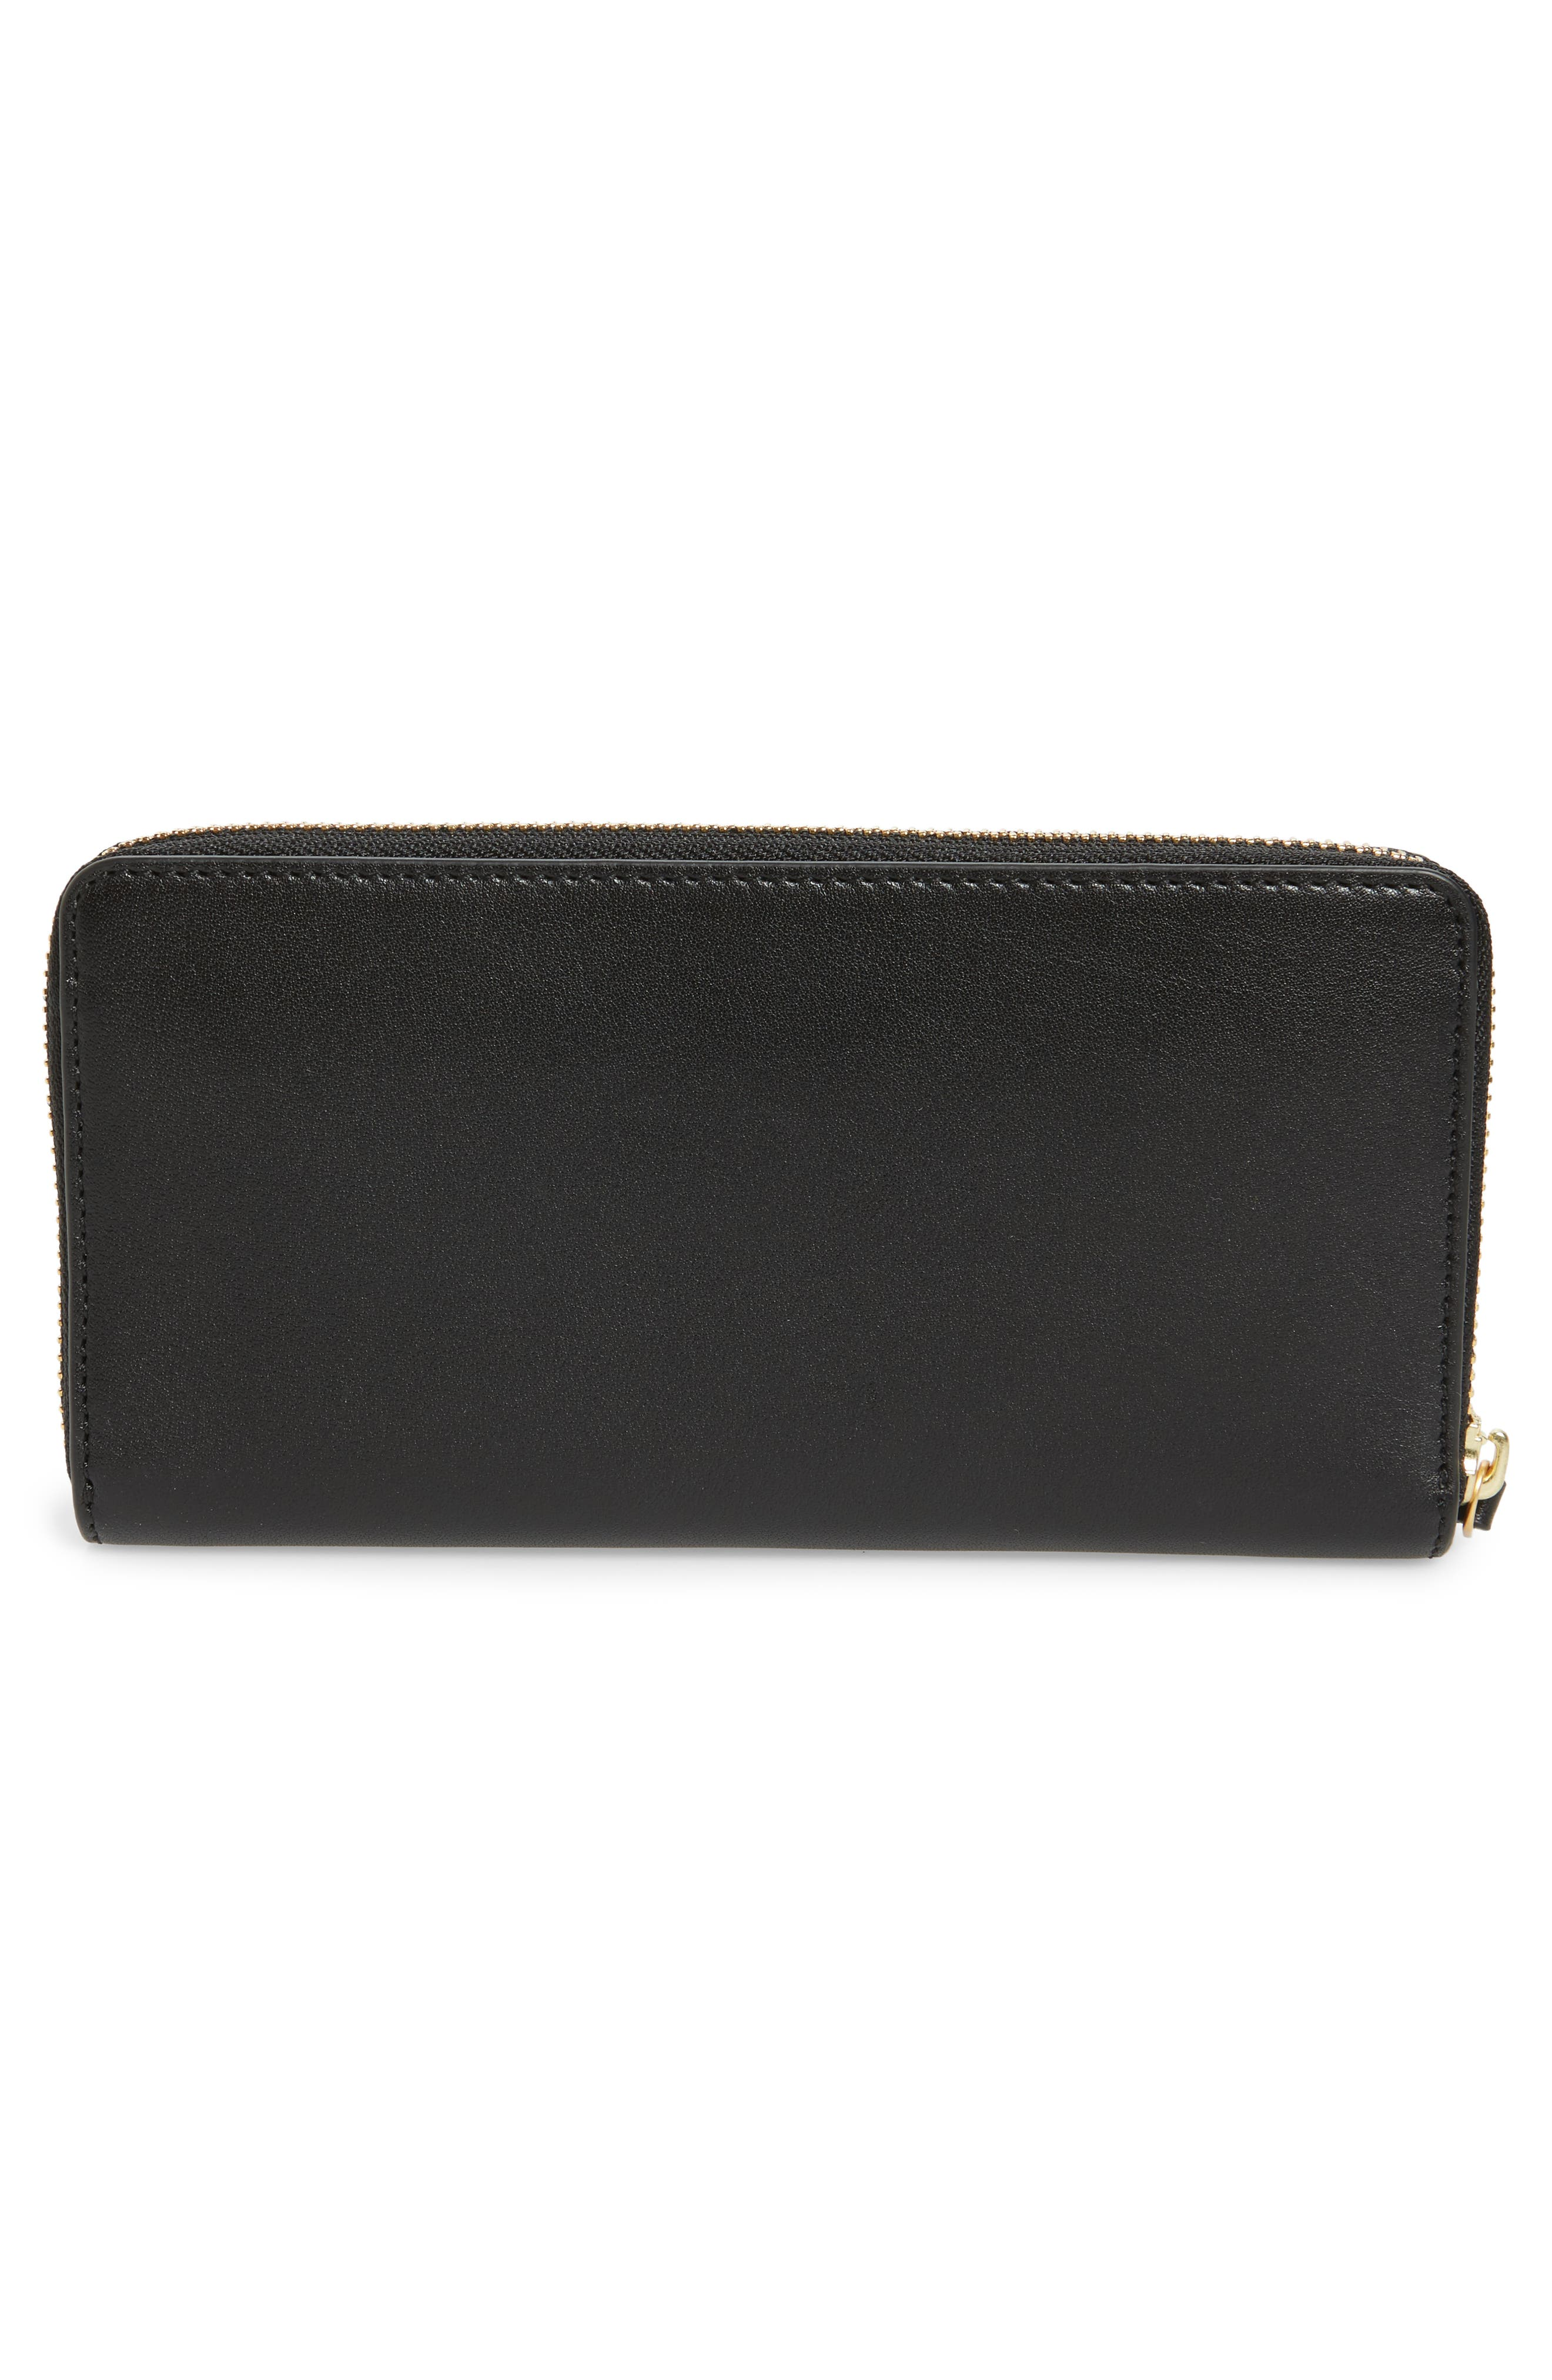 Charlie Leather Continental Wallet,                             Alternate thumbnail 7, color,